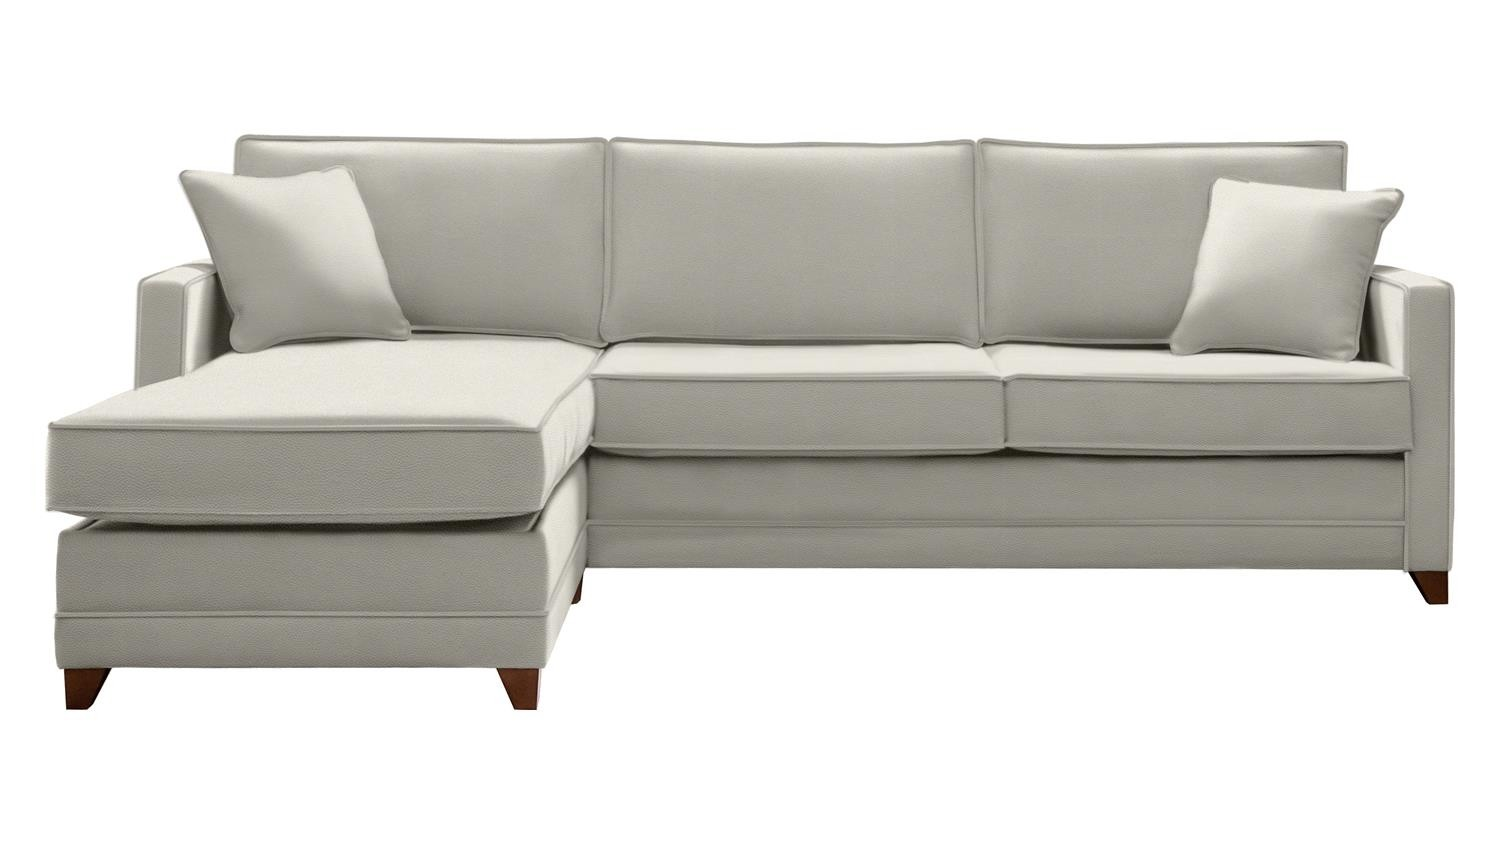 The Marston 4 Seater Left Chaise Storage Sofa Bed